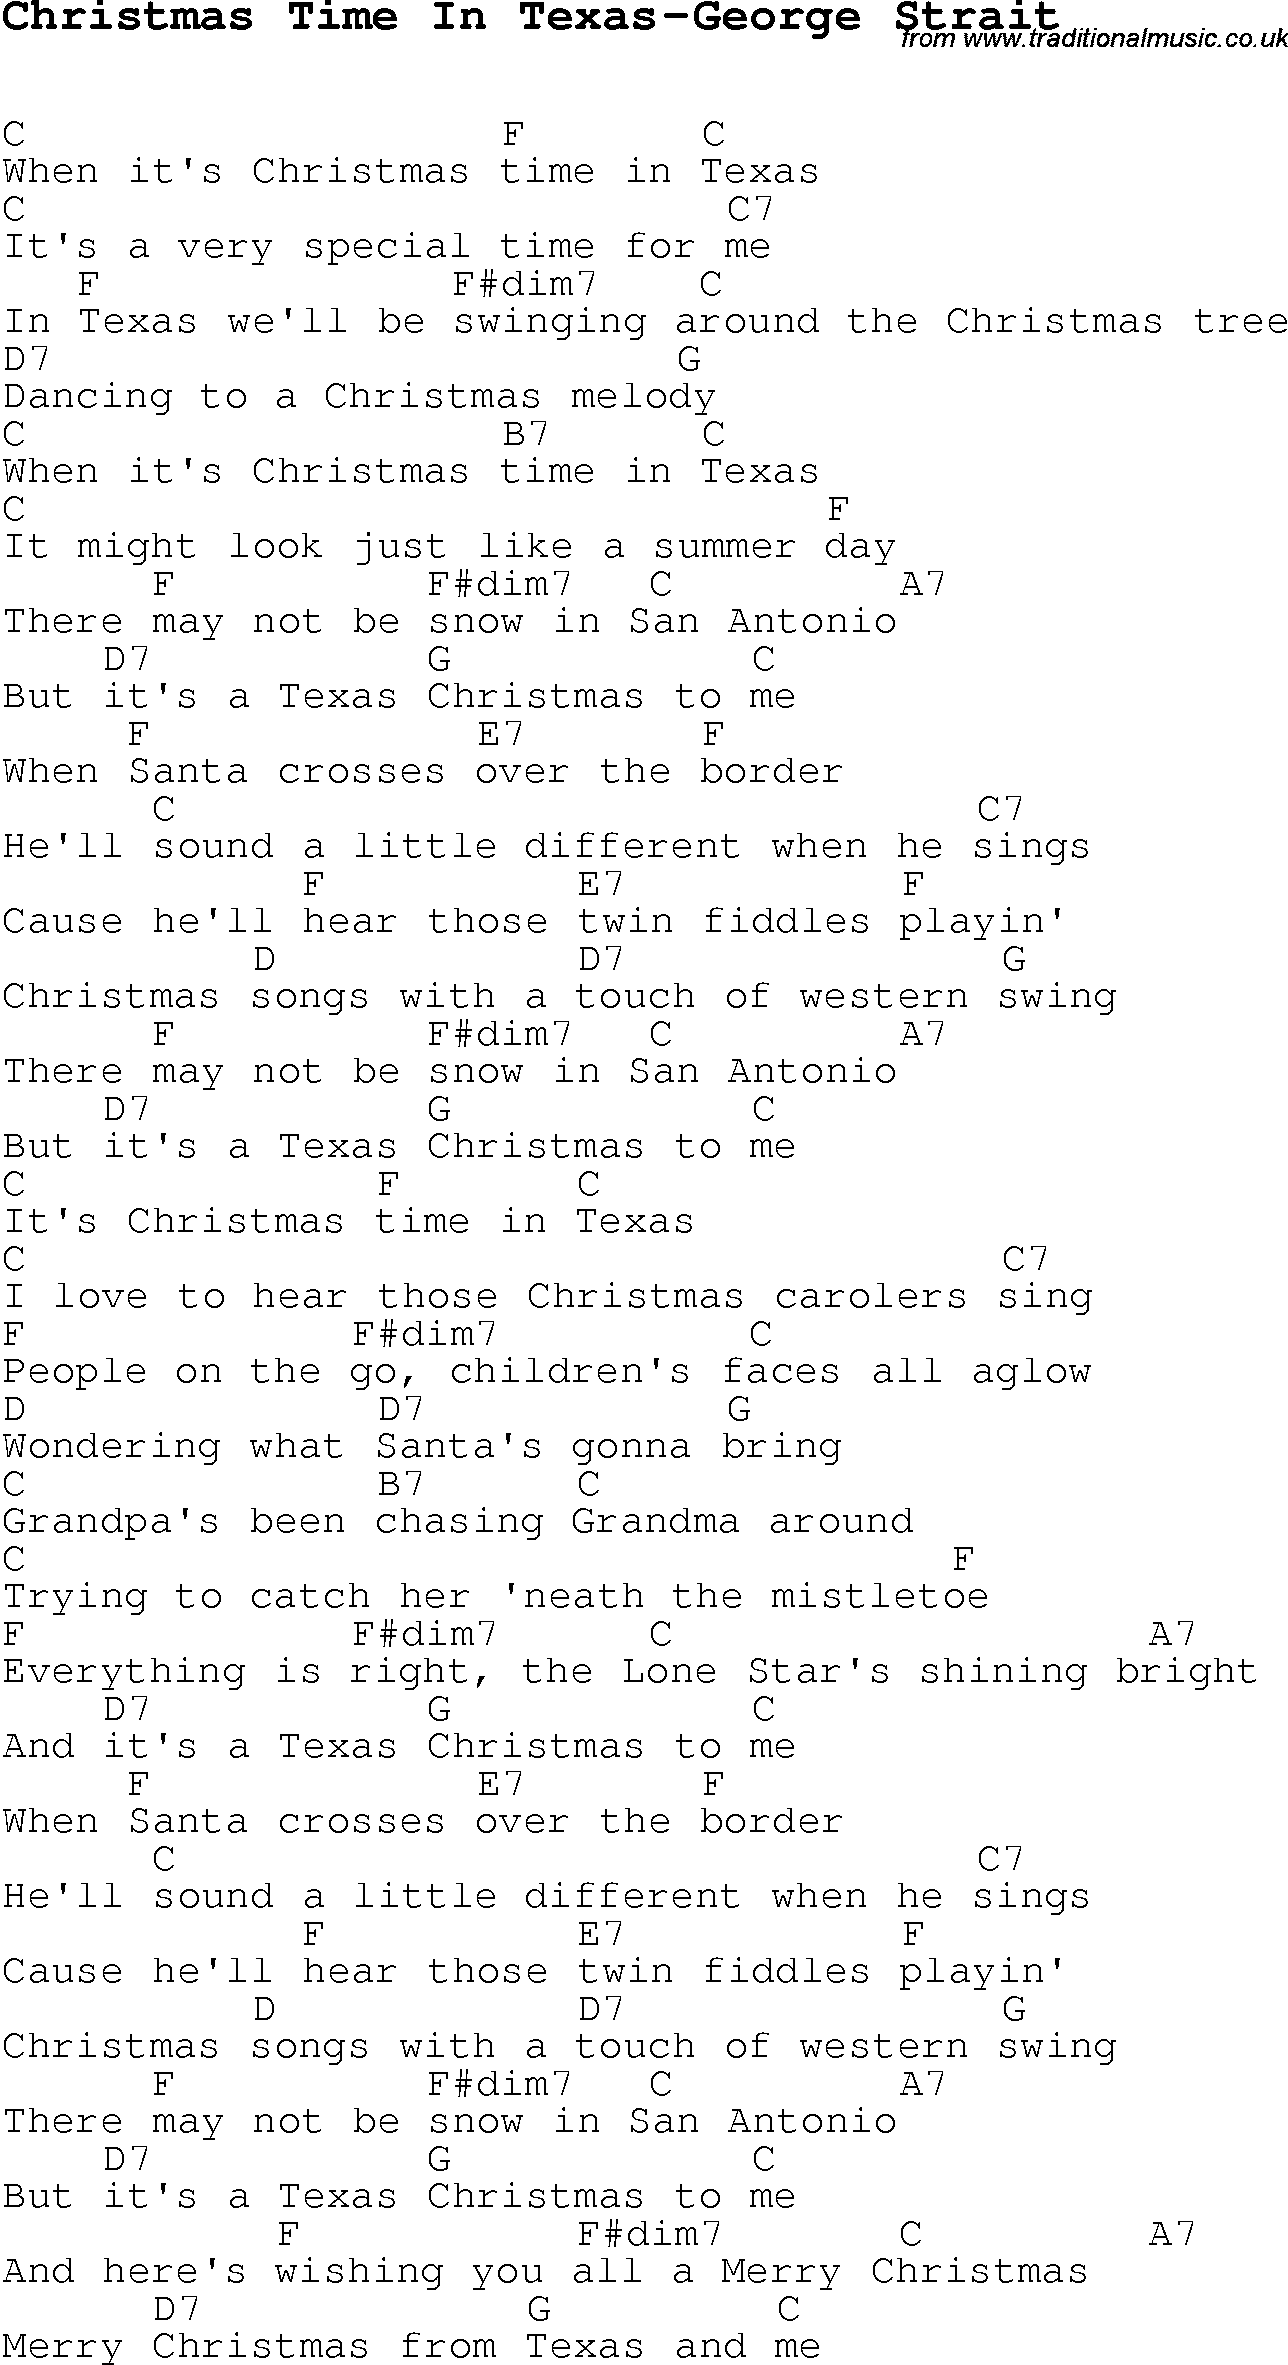 Christmas Carol/Song lyrics with chords for Christmas Time In Texas ...